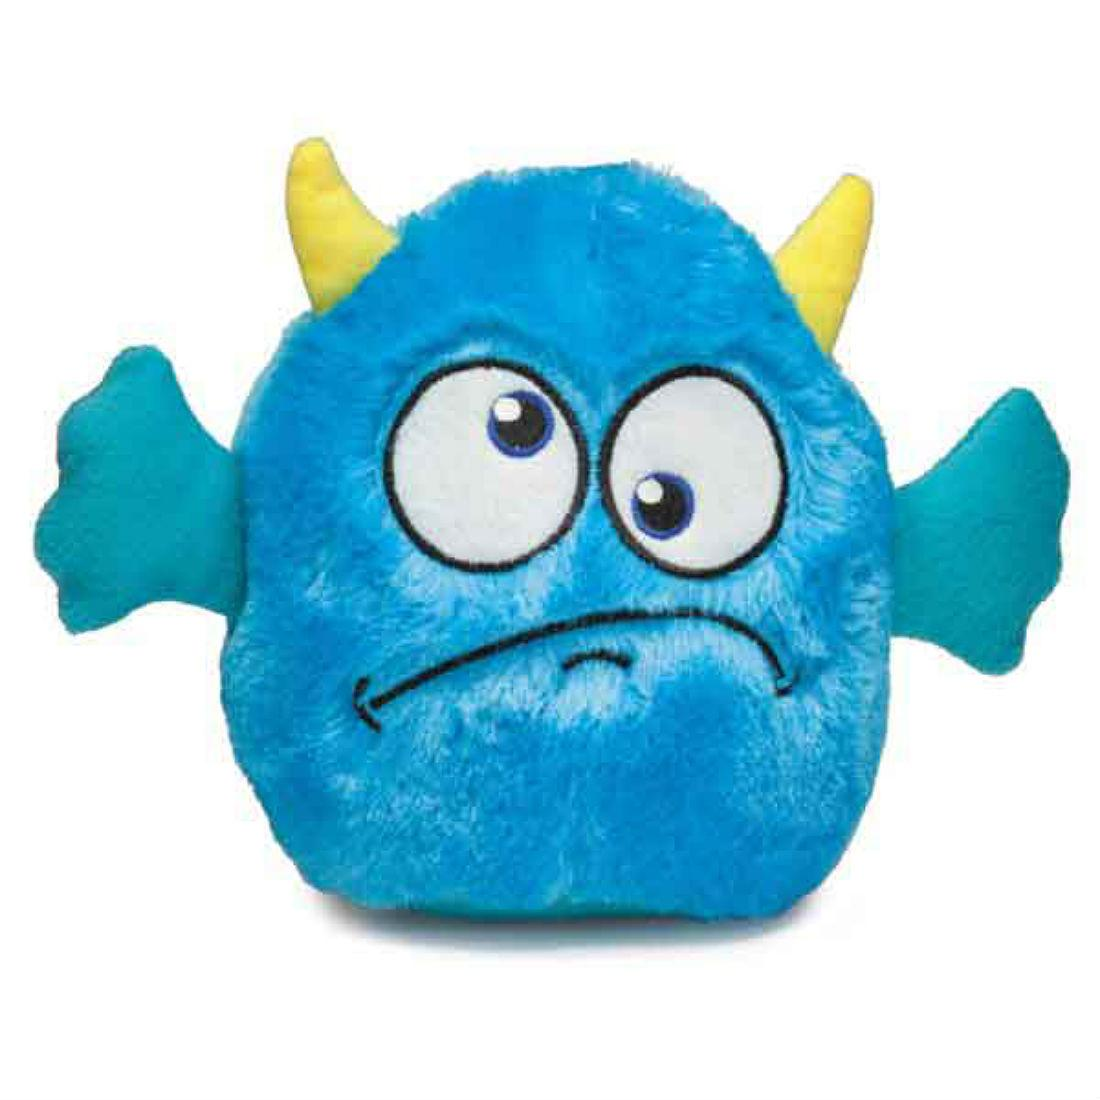 Zanies Rock Monster Plush Dog Toy - Blue